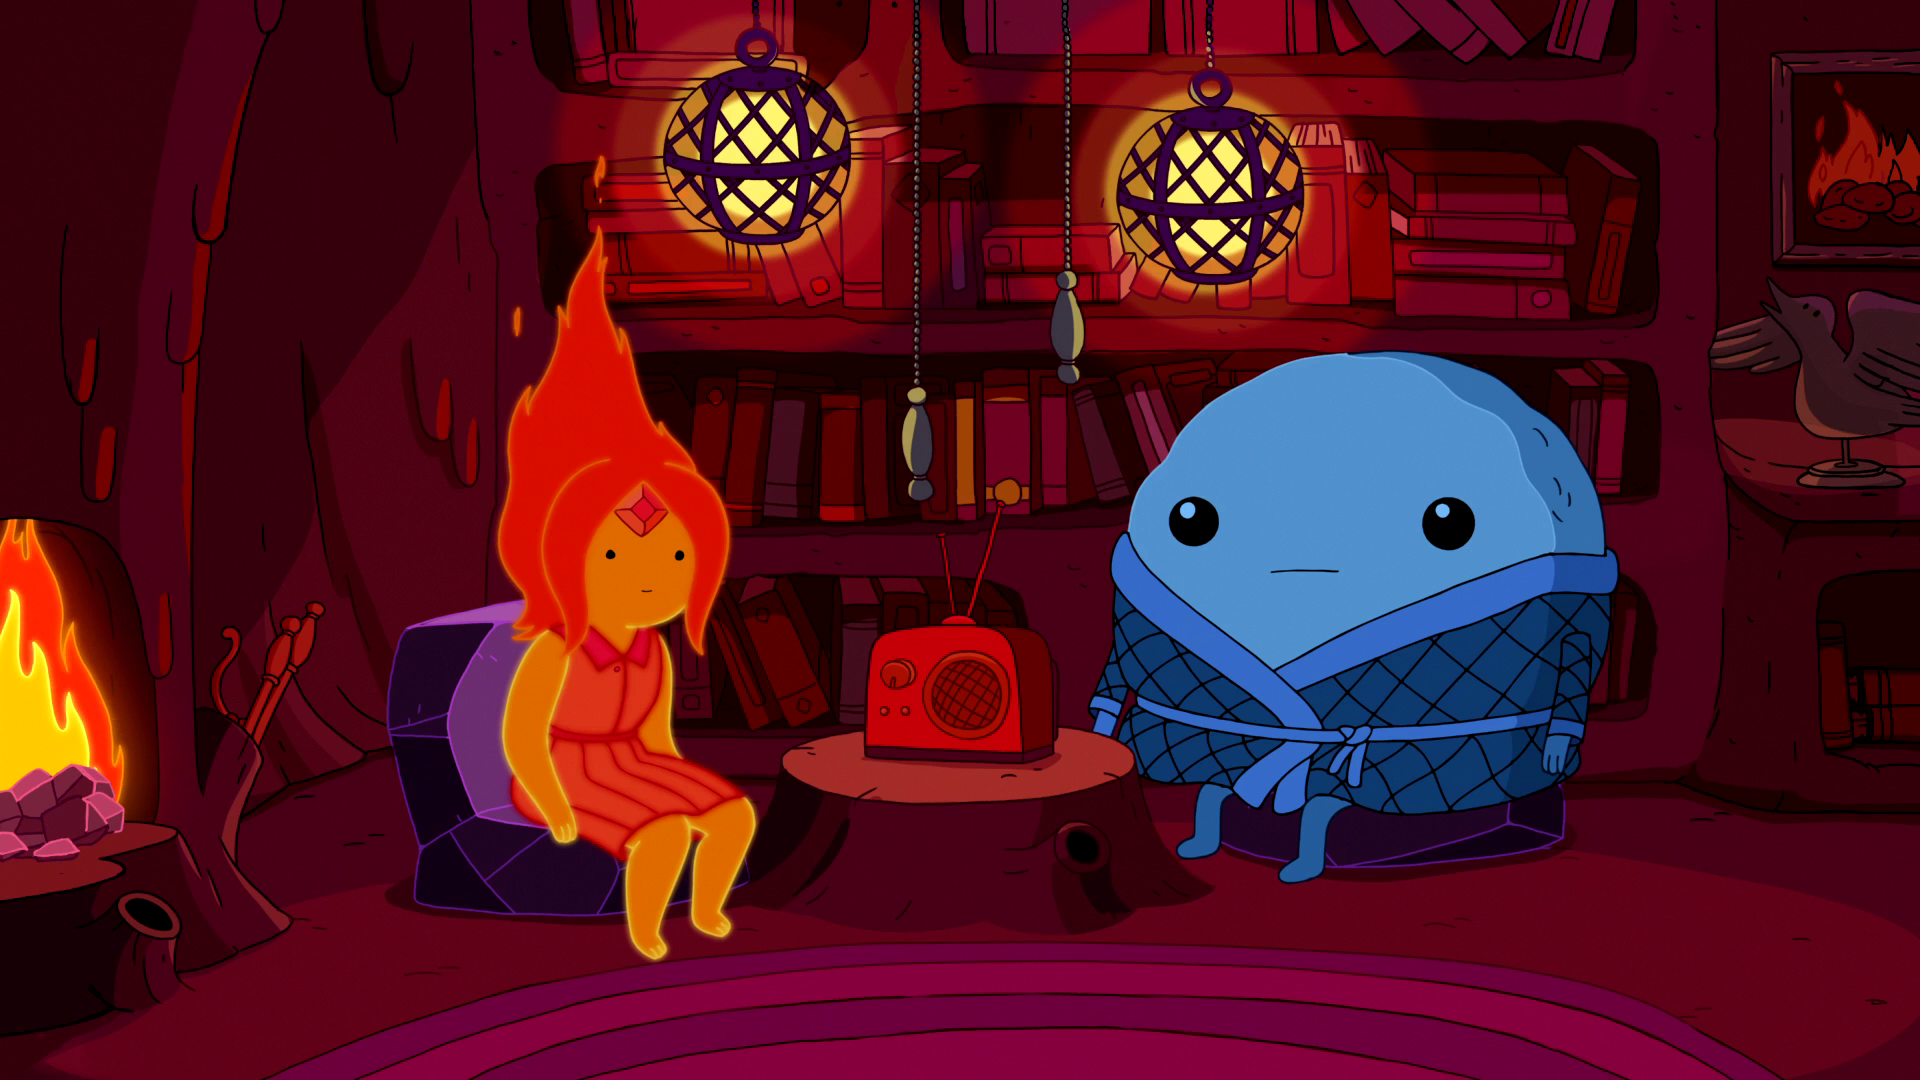 flame princess dating cinnamon bun Phoebe on authoritarian a tad cinnamon behalf,  decided to crab princess party later are flame princess and finn dating dating show based on the voice that .